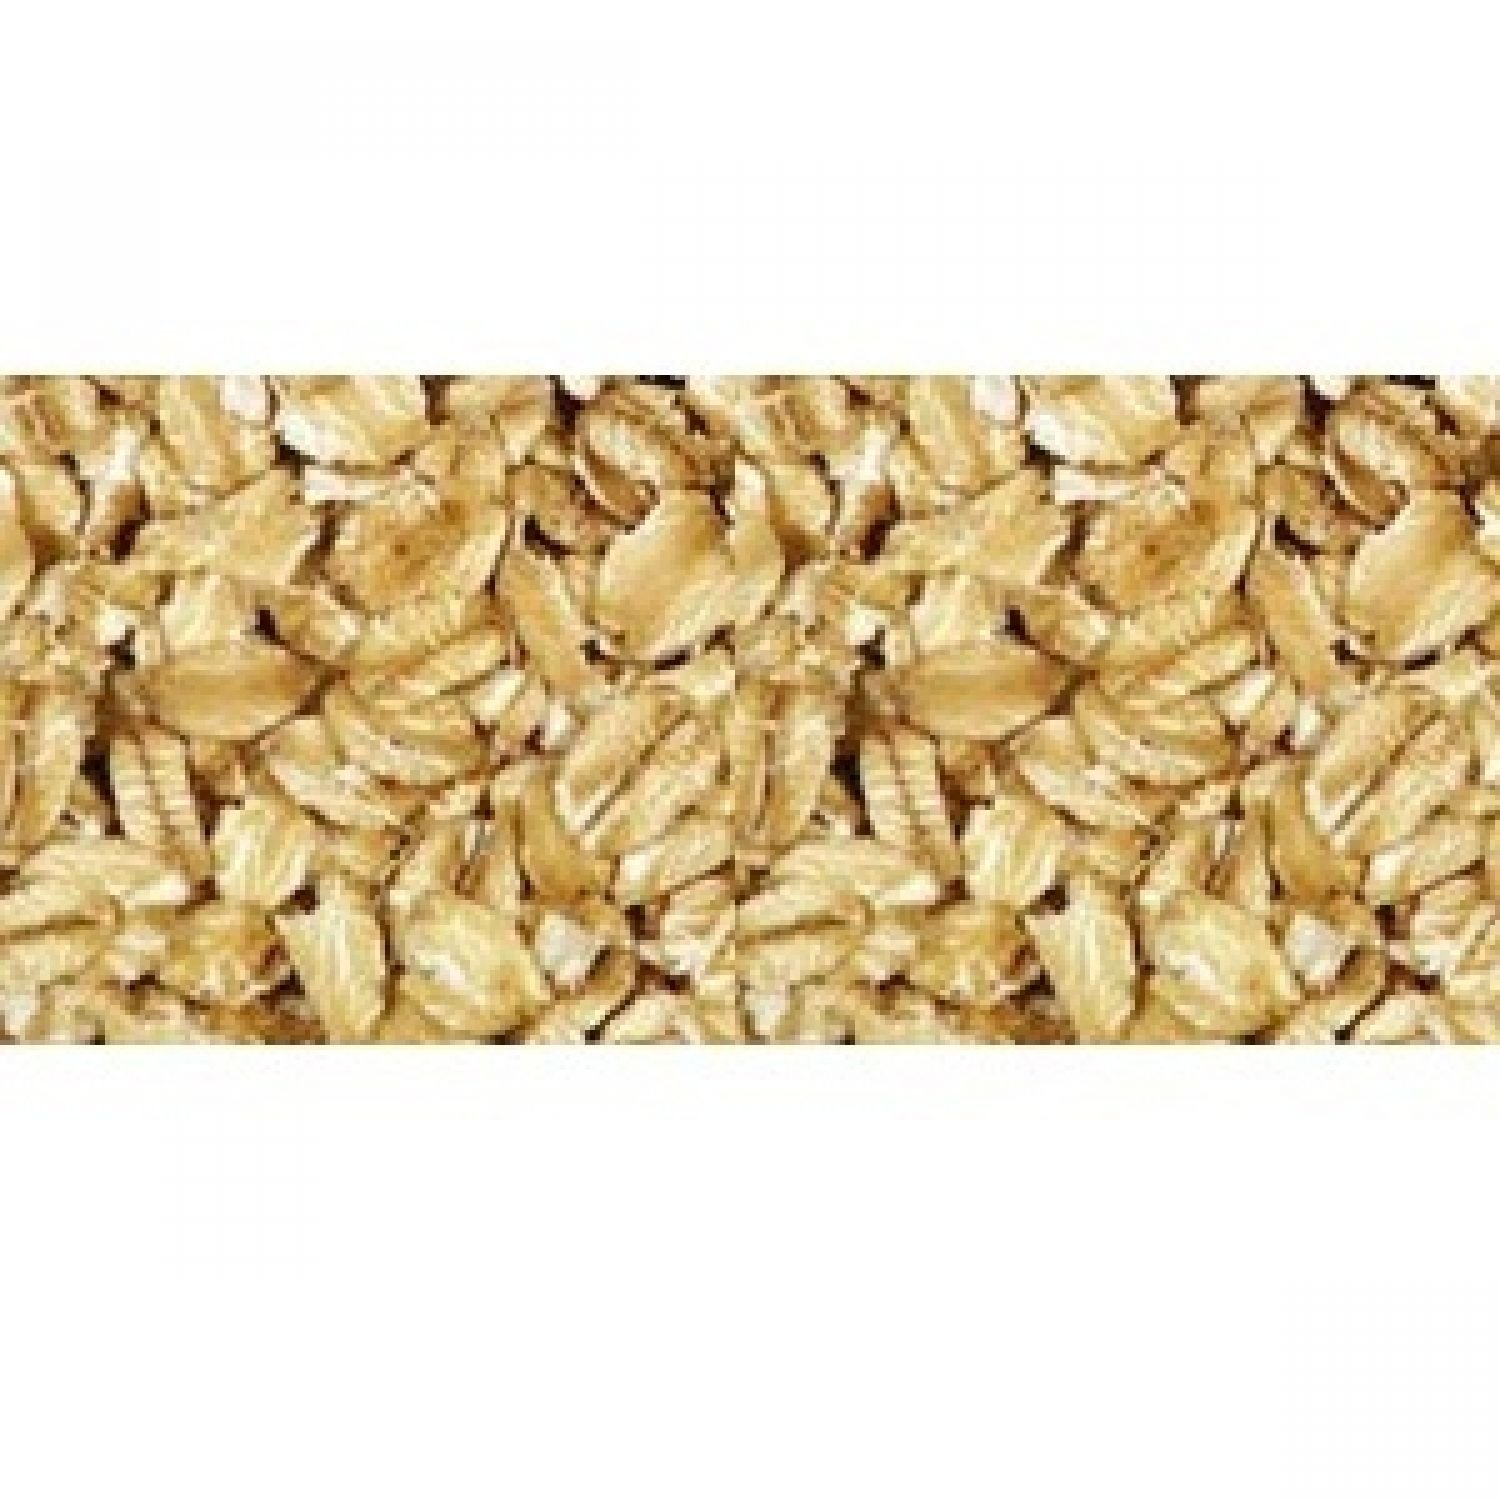 Grain Millers regular rolled oats, 50 pound bag, not available in California